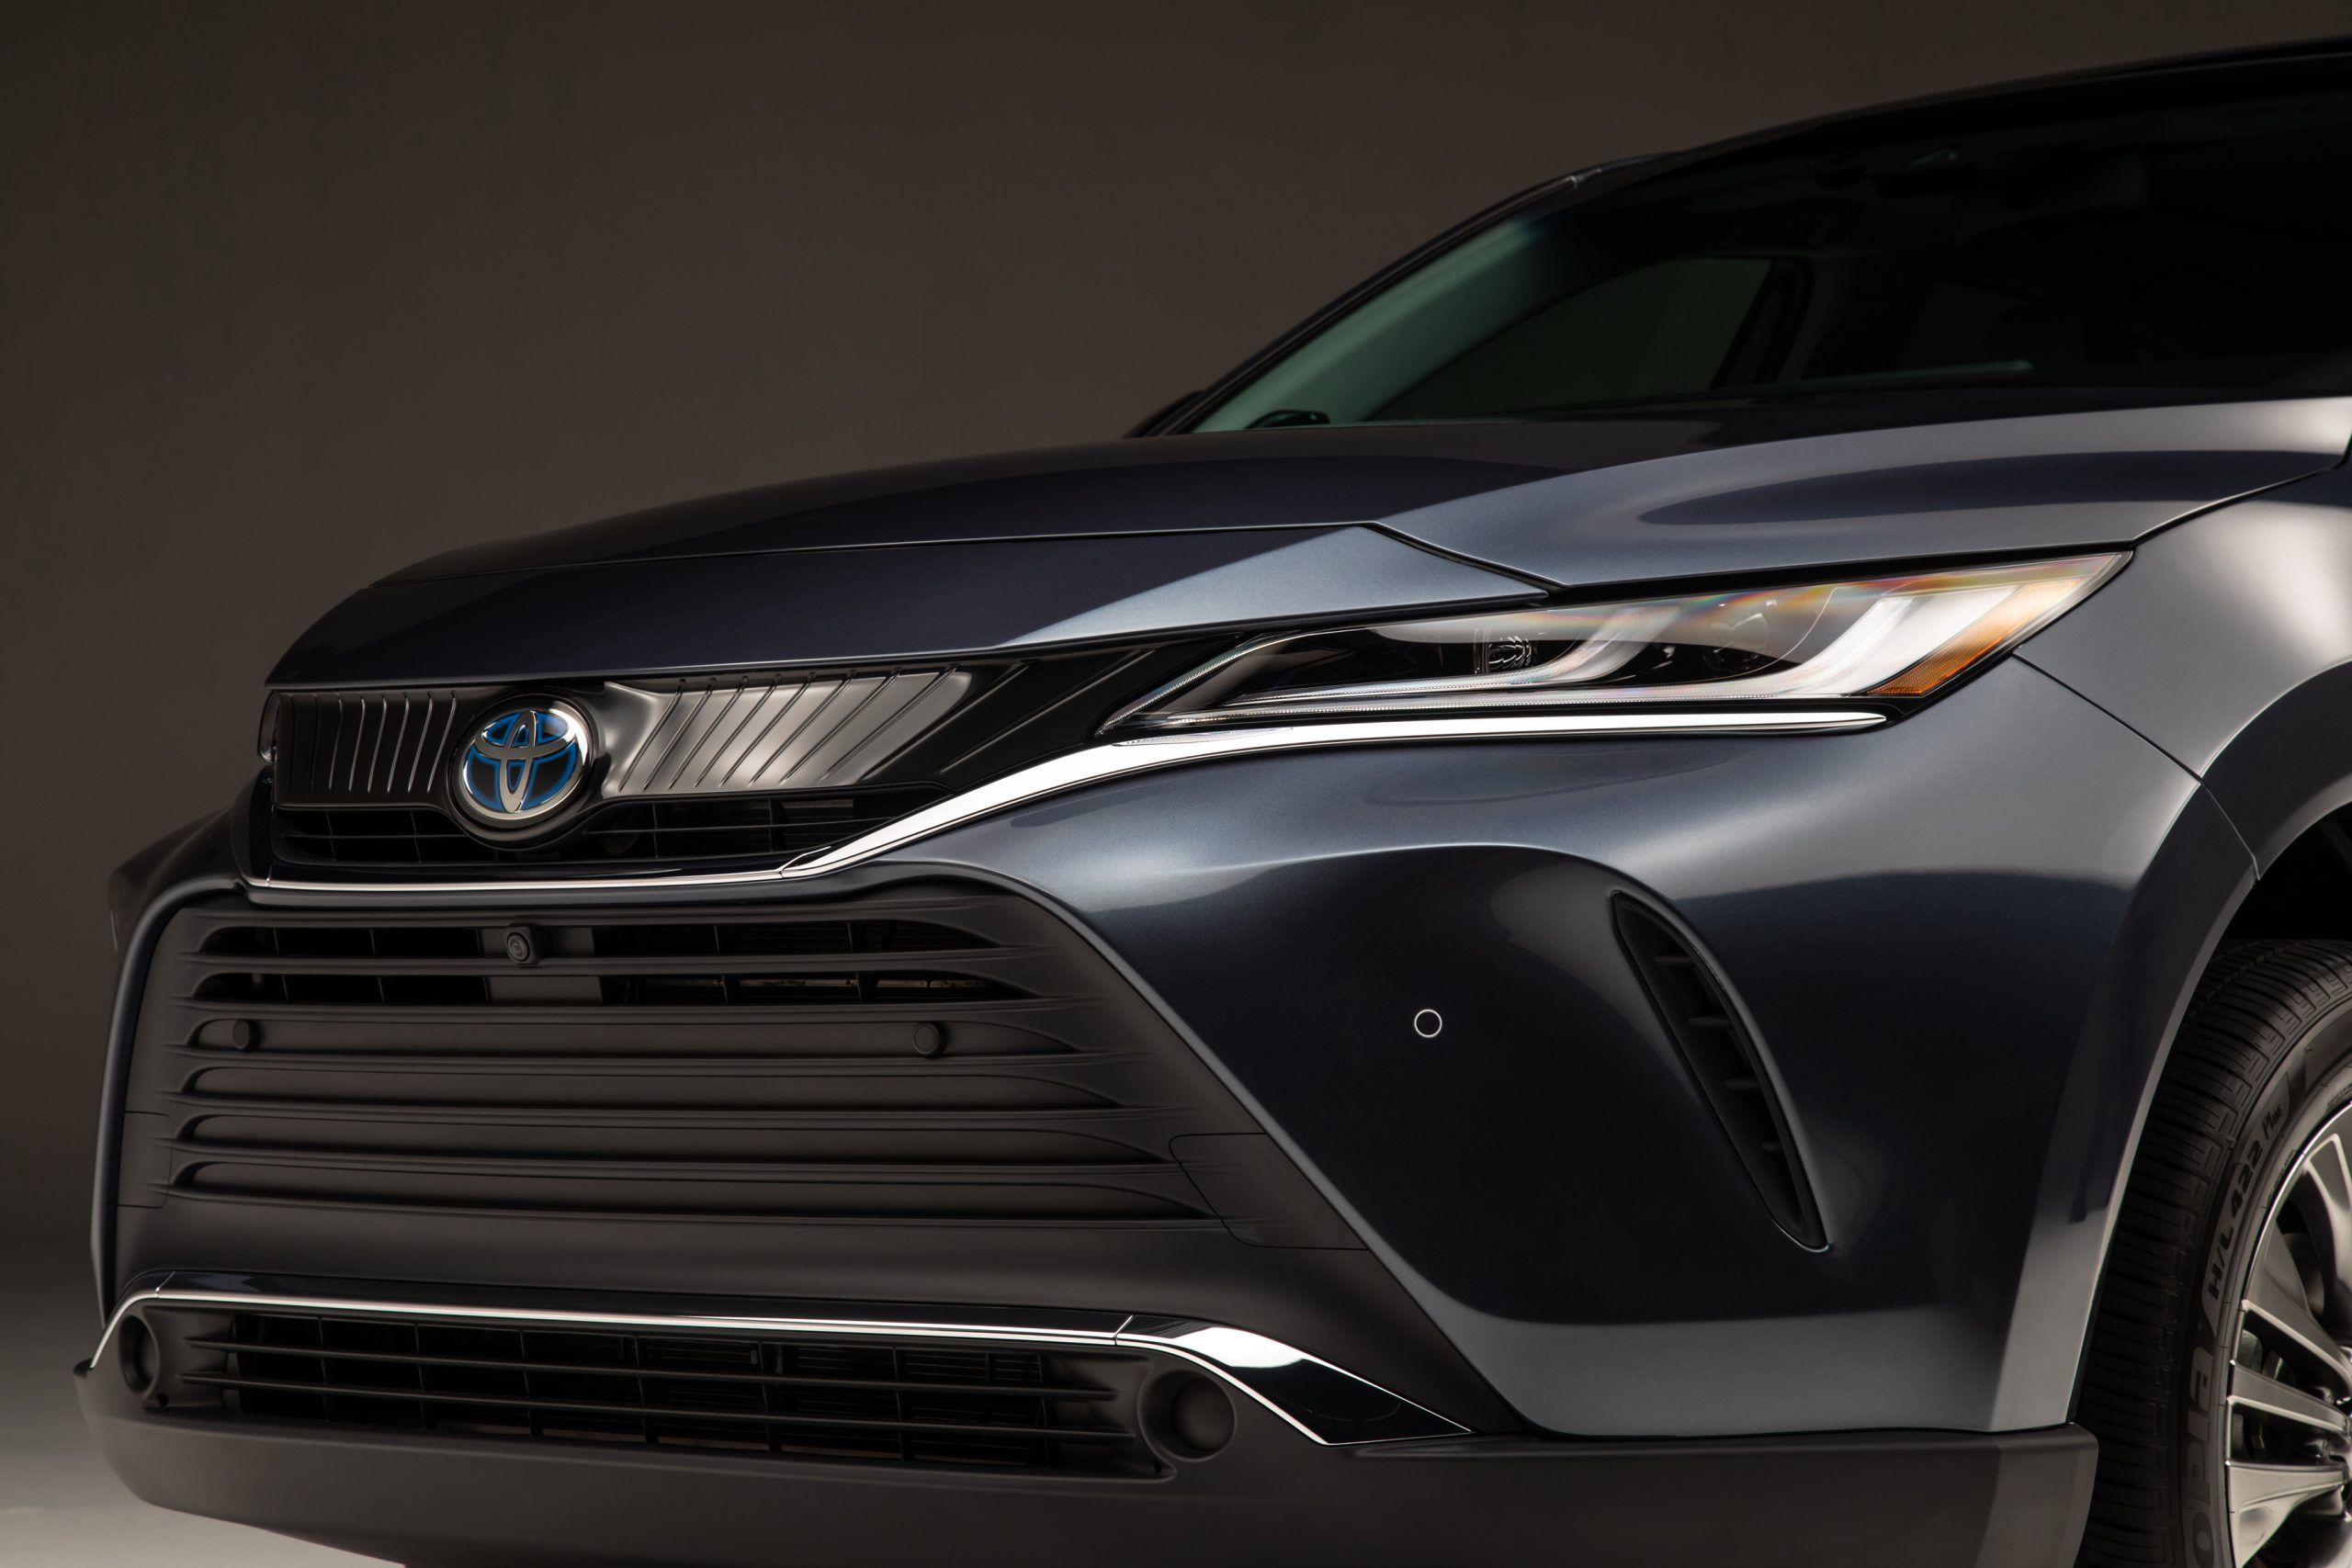 2021-Toyota-Venza_Exterior_011-scaled.jpg